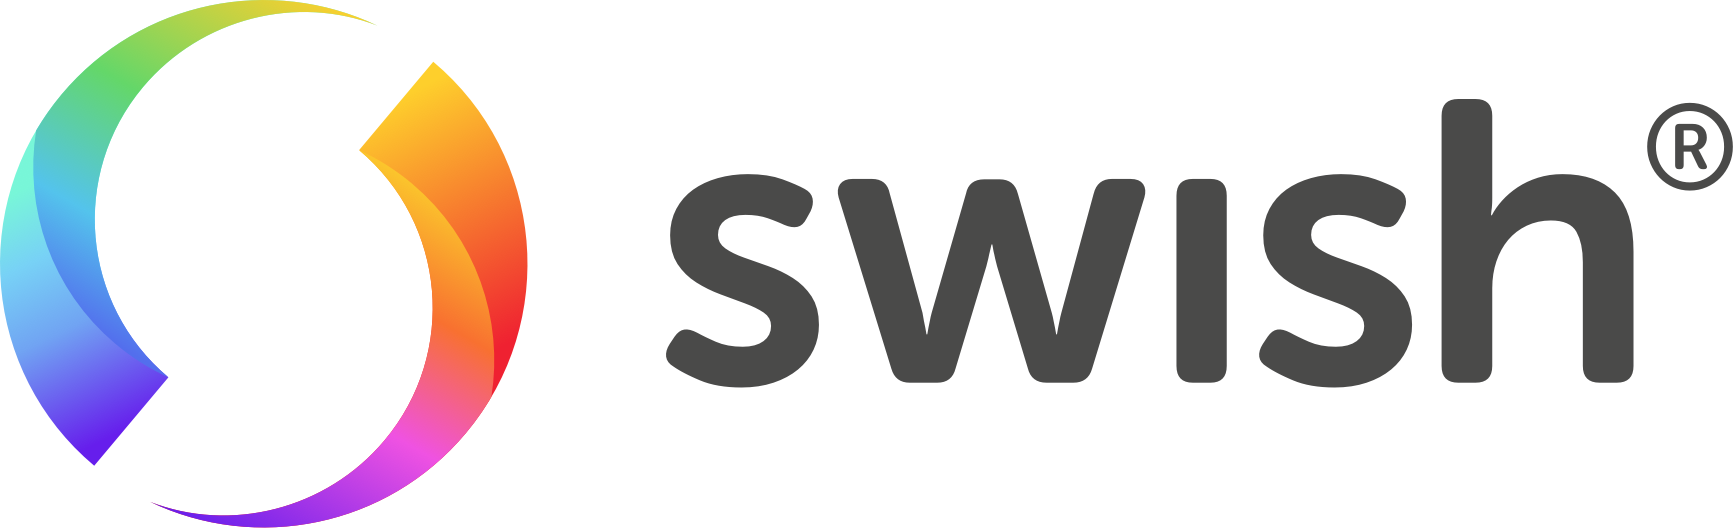 Swish Logo Secondary Light BG P3